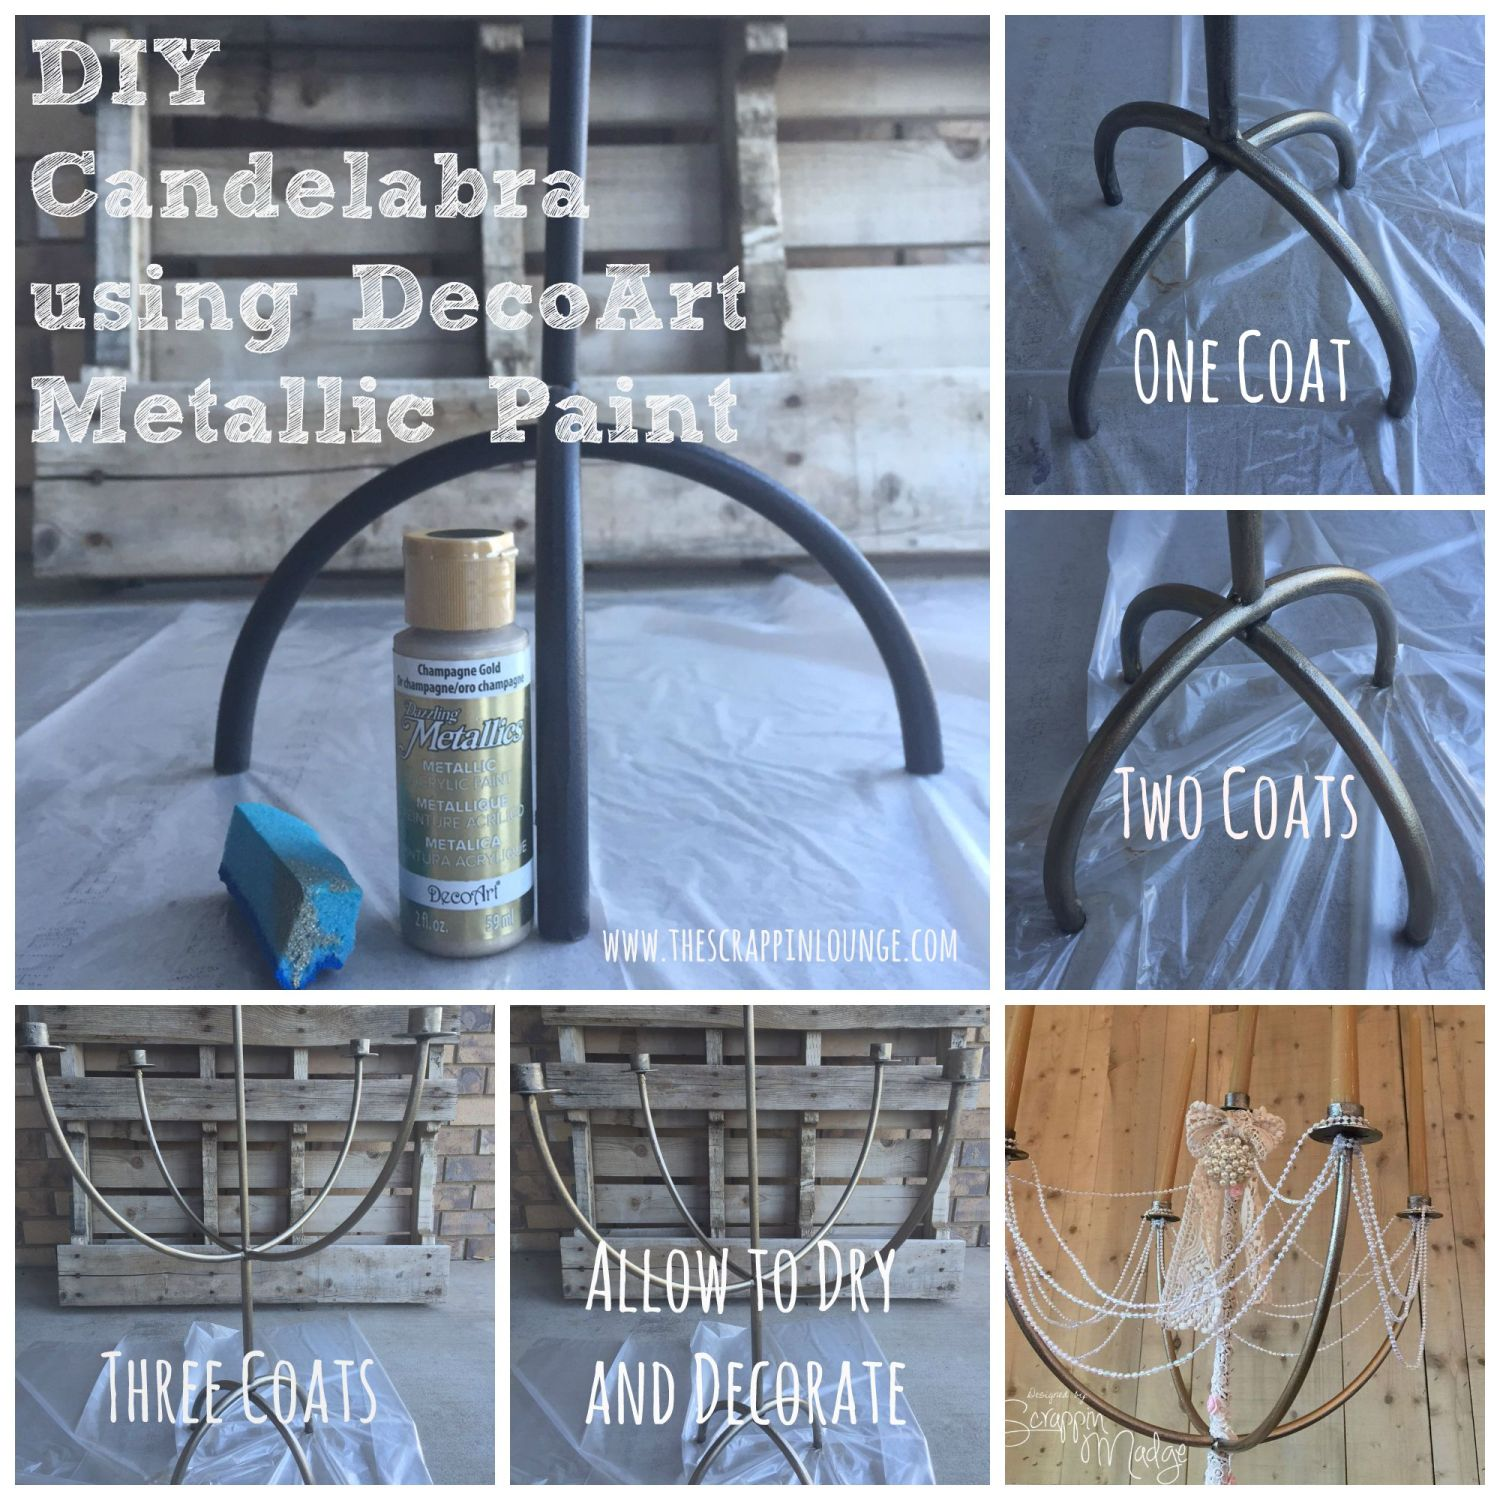 DIY Candelabra using Deco Art Metallic Paint